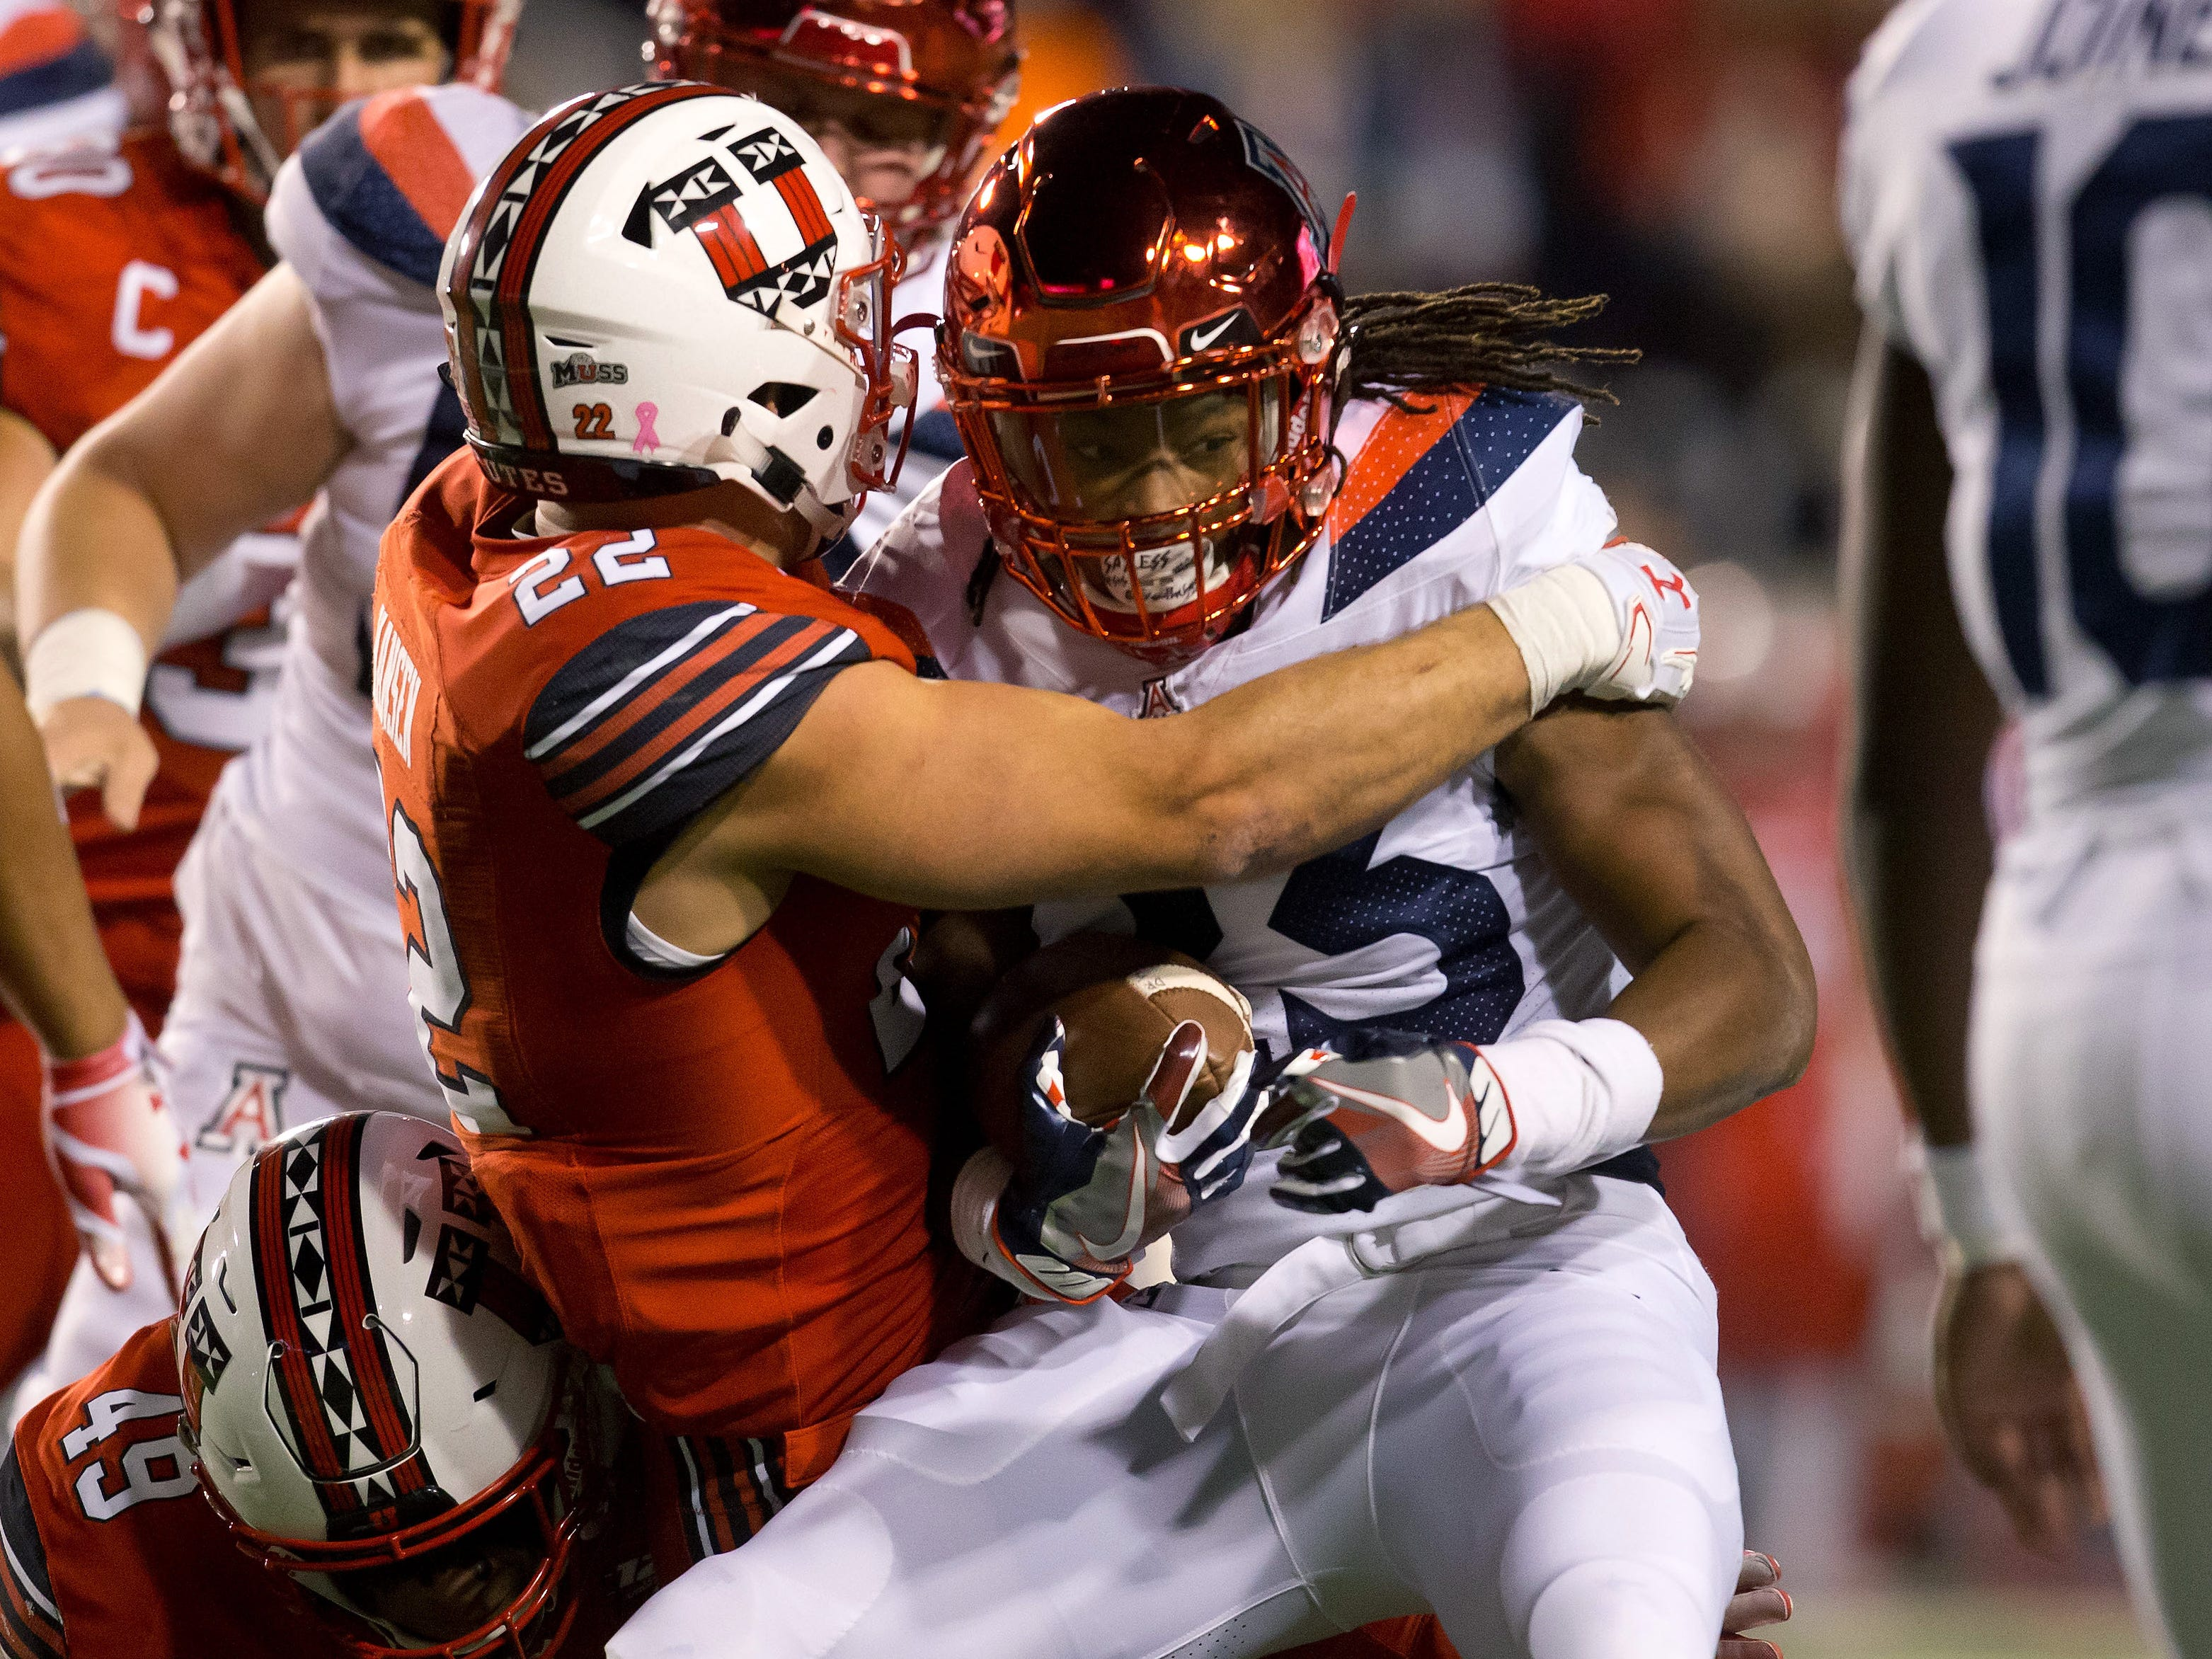 Oct 12, 2018; Salt Lake City, UT, USA; Arizona Wildcats running back Gary Brightwell (23) is tackled by Utah Utes linebacker Chase Hansen (22) during the first half at Rice-Eccles Stadium.